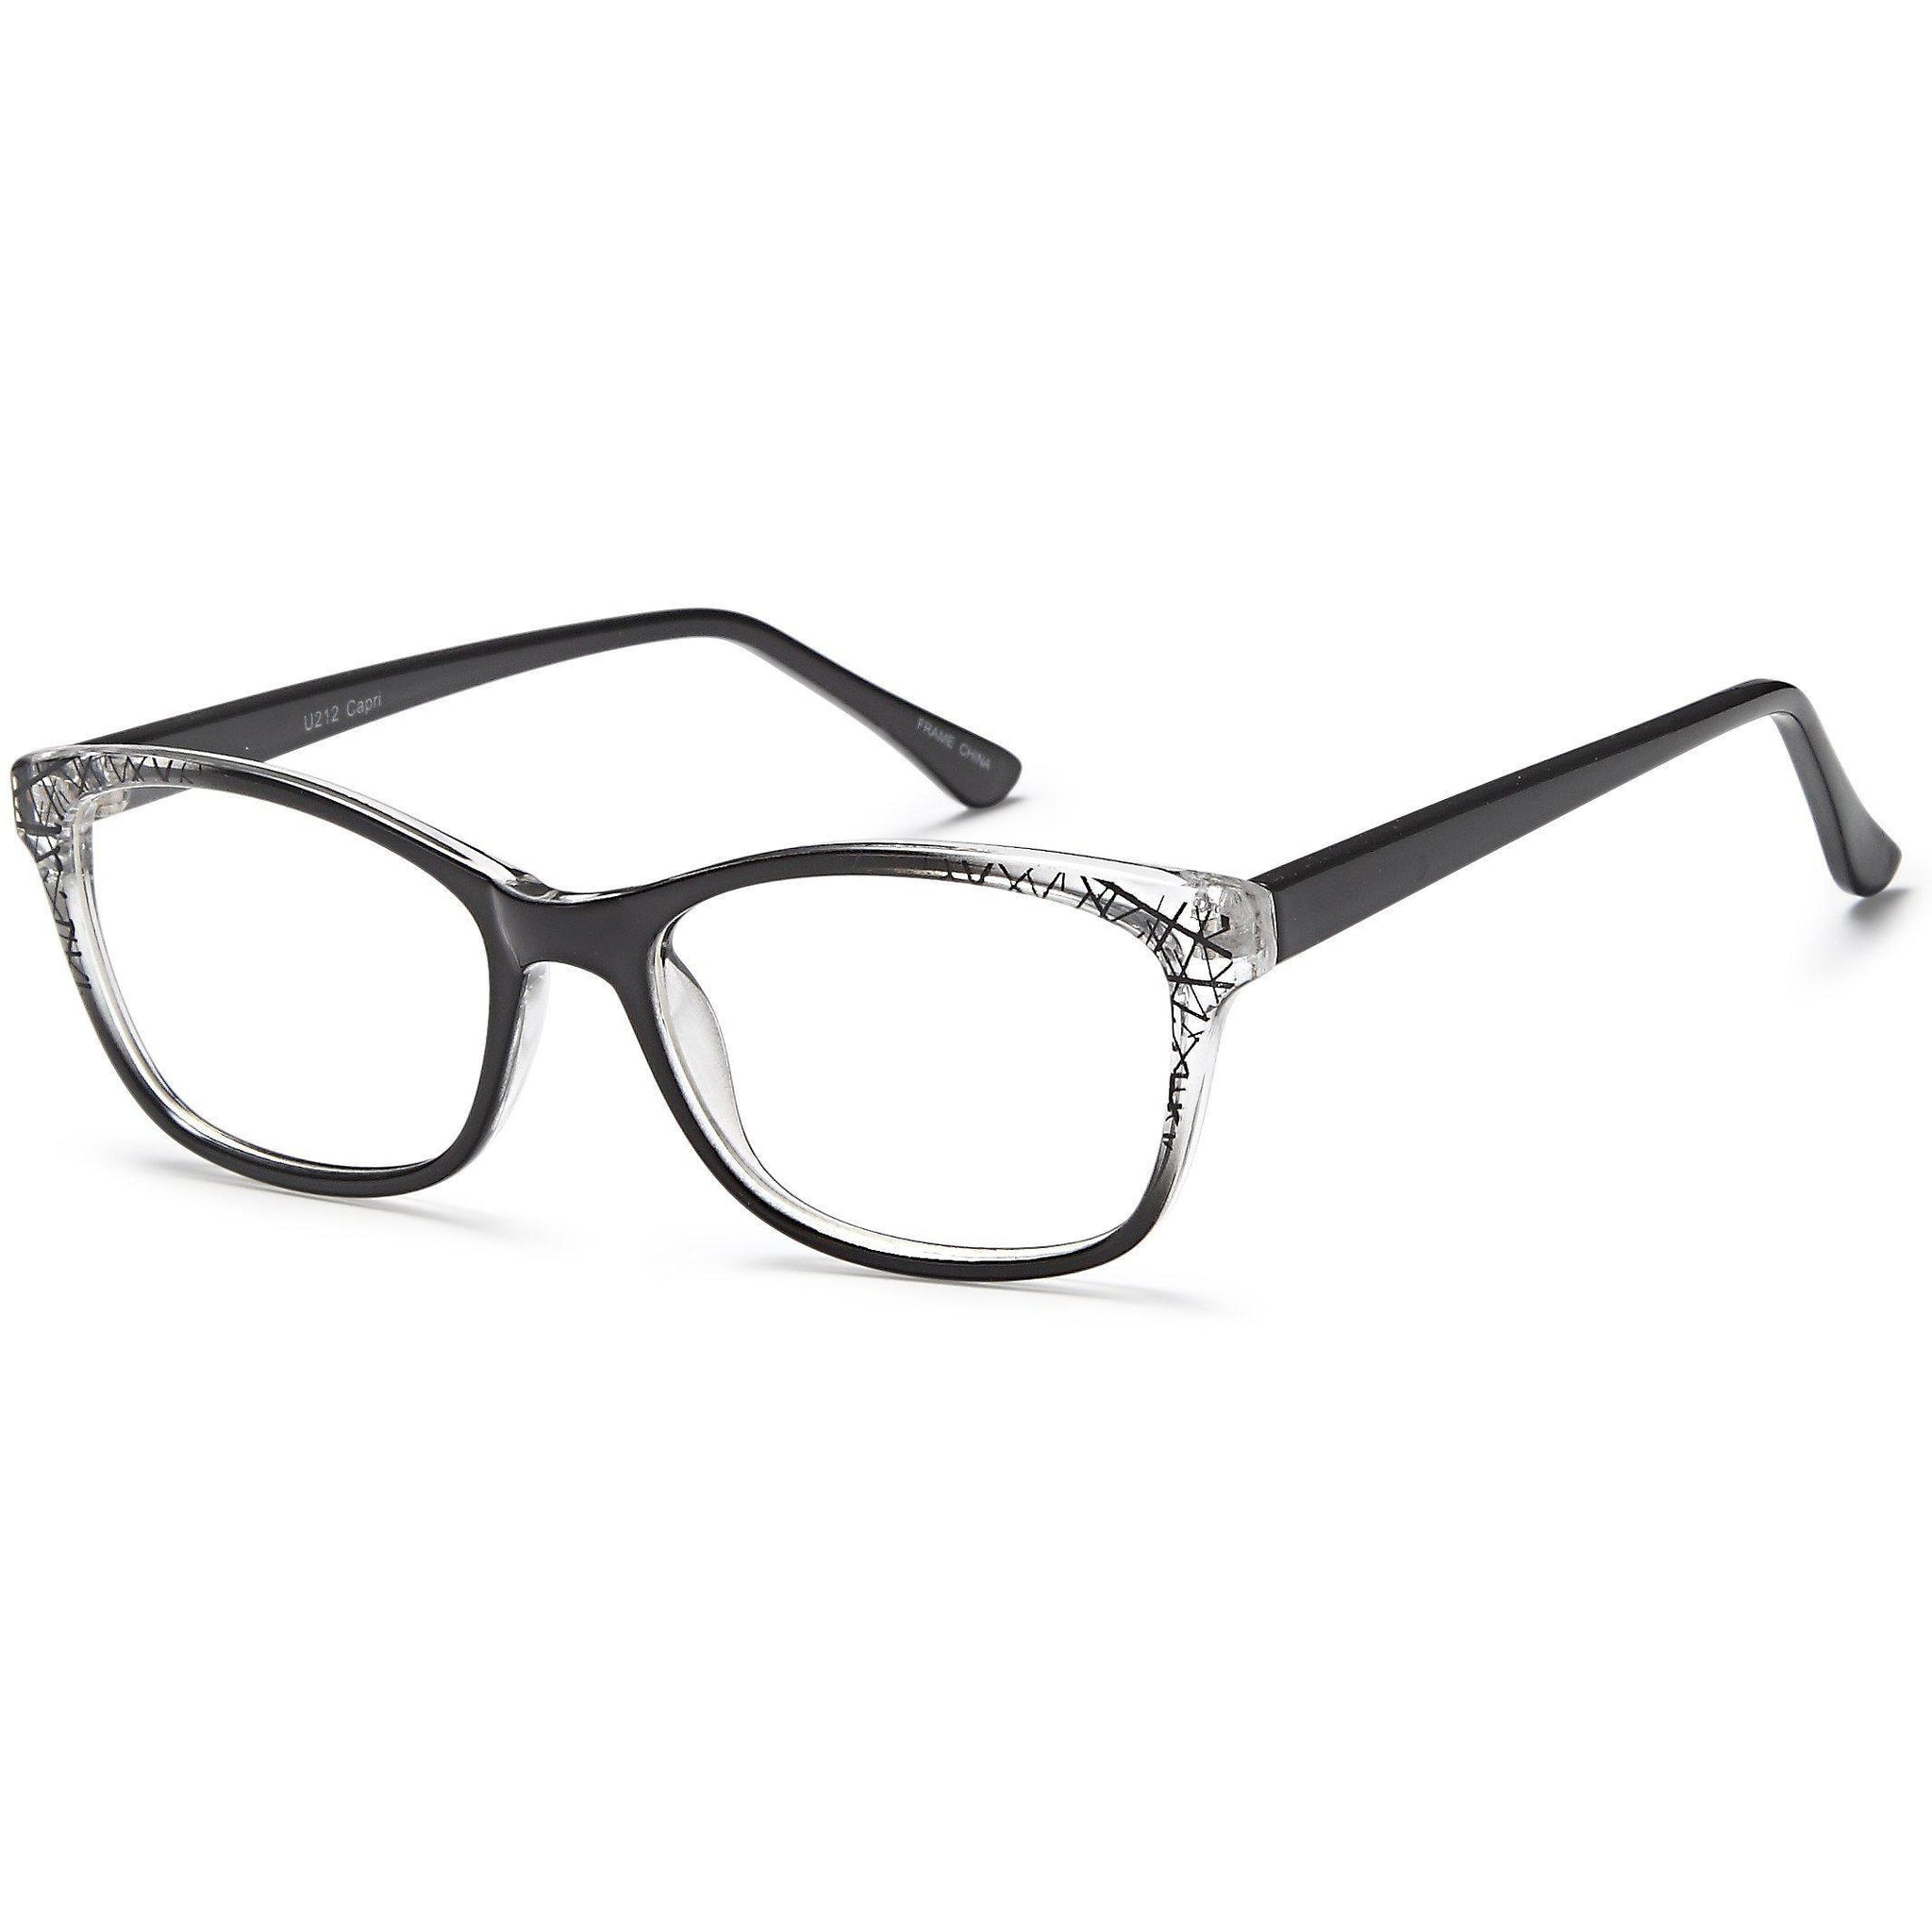 Primrose Hill by The Square Mile Prescription Eyeglasses Frame